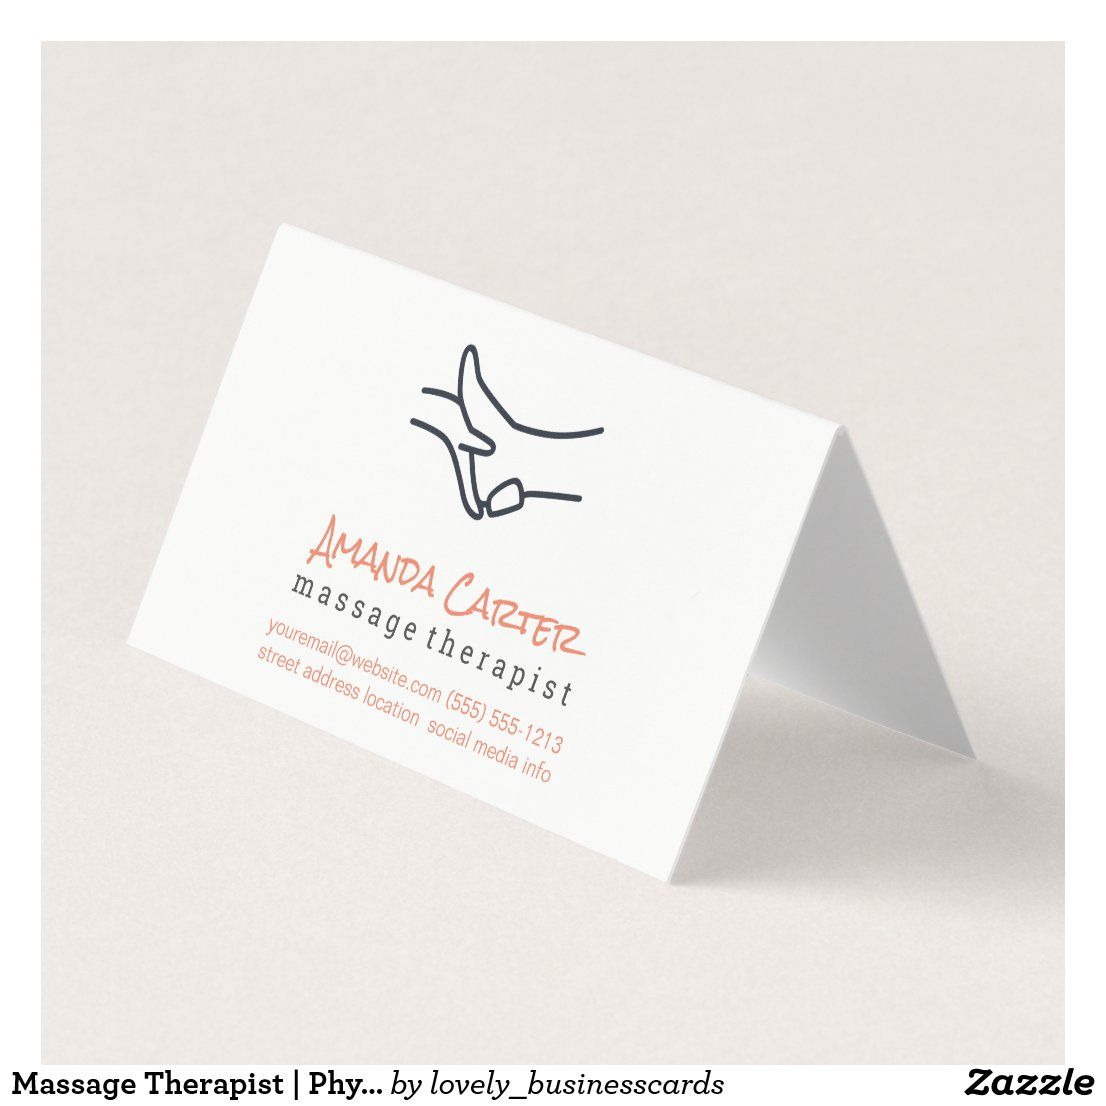 Massage Therapist Physical Therapist Business Card Zazzle Com Massage Therapist Physical Therapist Fitness Business Card